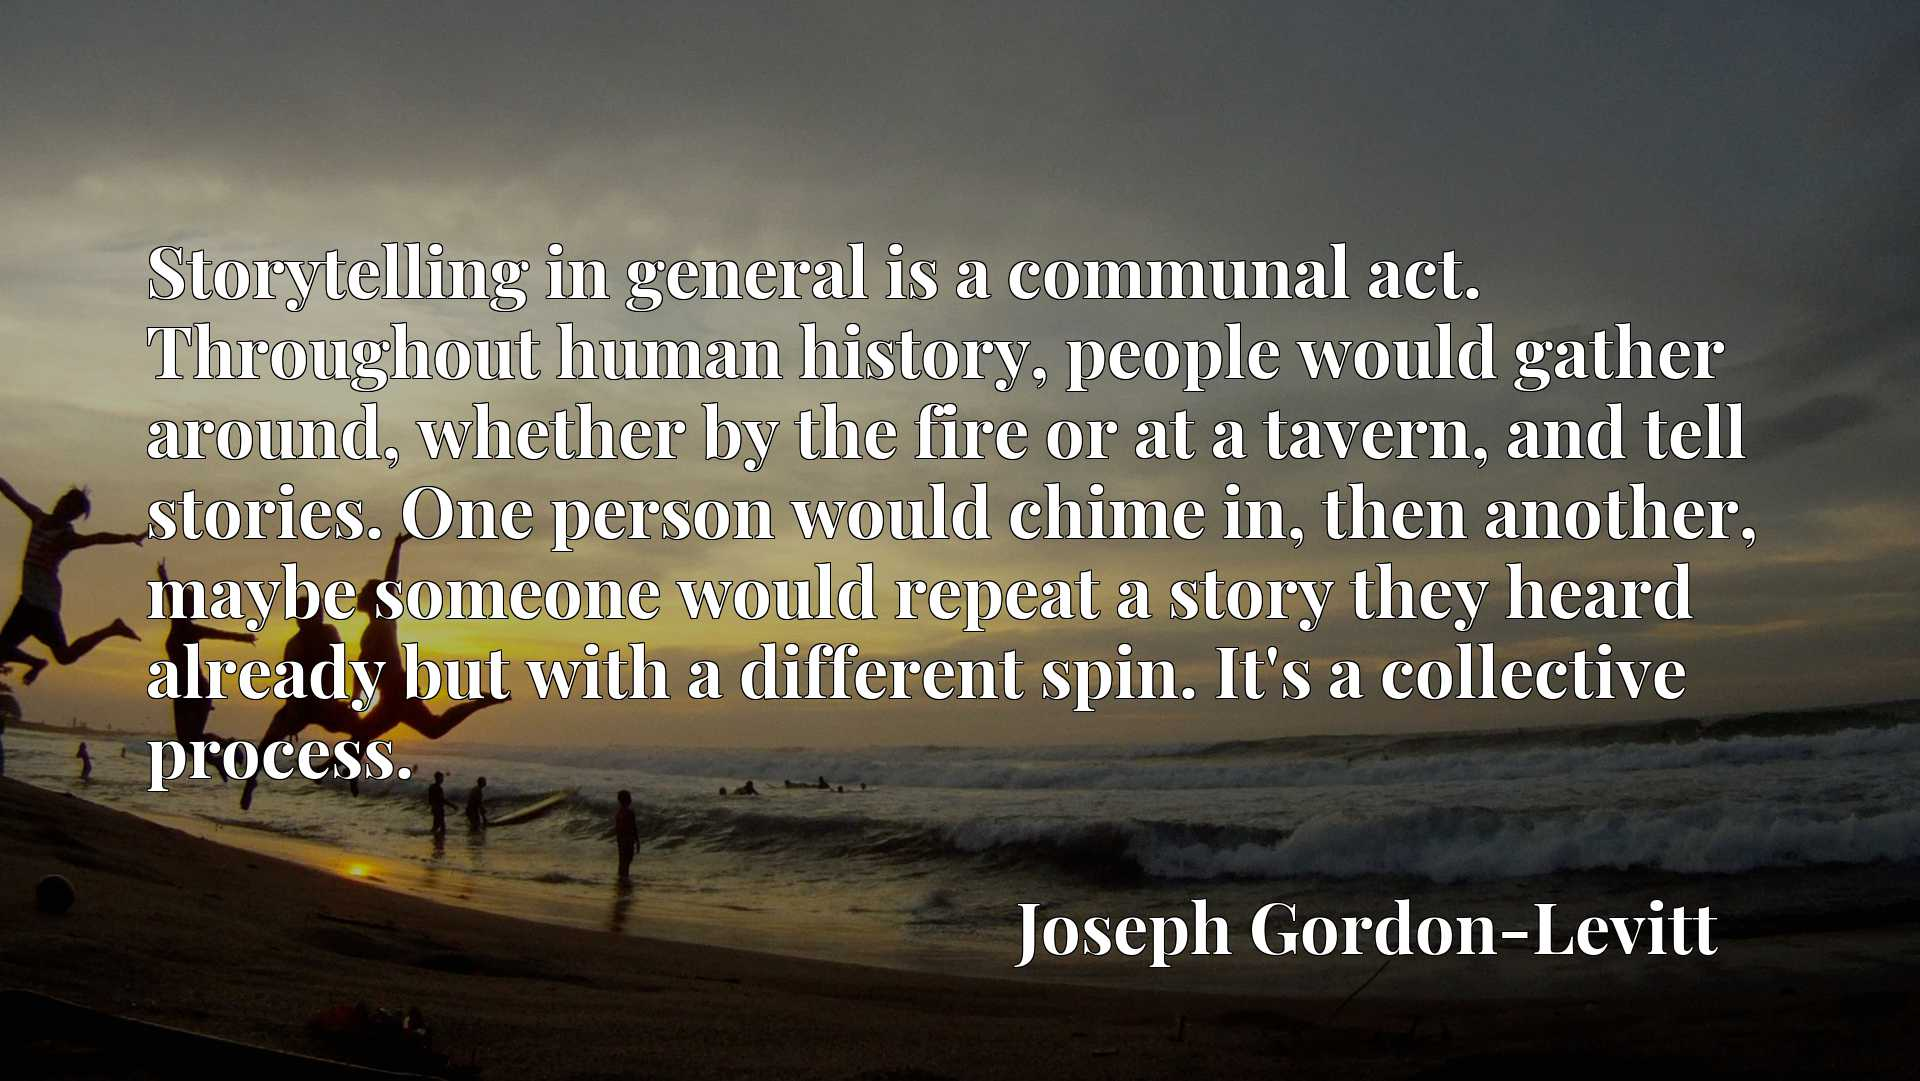 Storytelling in general is a communal act. Throughout human history, people would gather around, whether by the fire or at a tavern, and tell stories. One person would chime in, then another, maybe someone would repeat a story they heard already but with a different spin. It's a collective process.